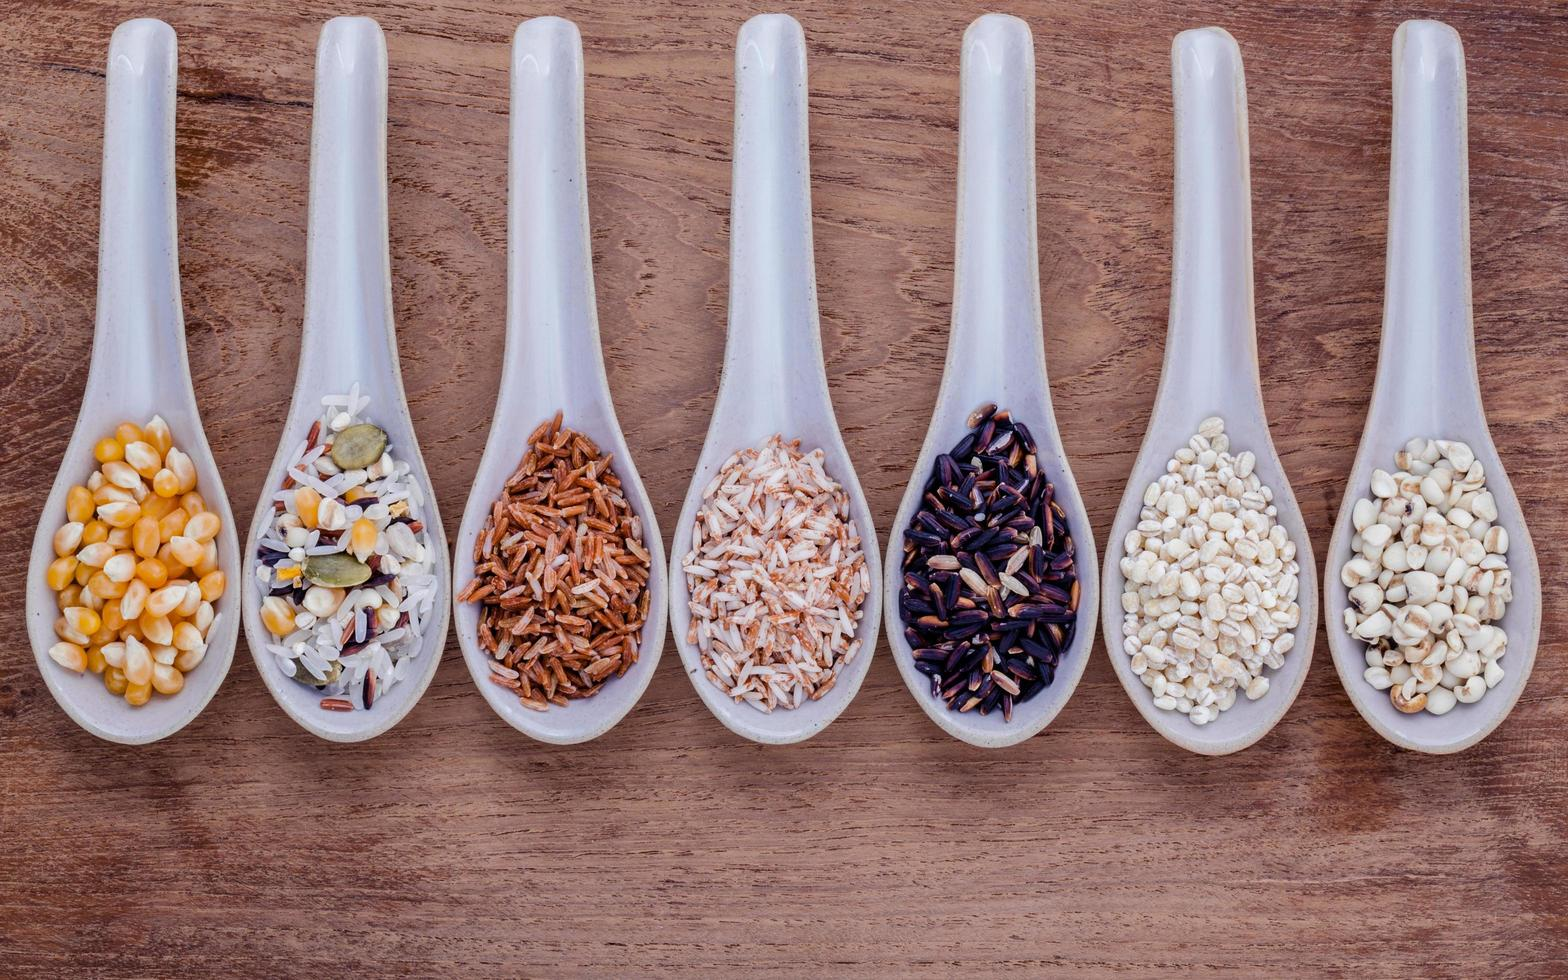 Spoons of grains photo